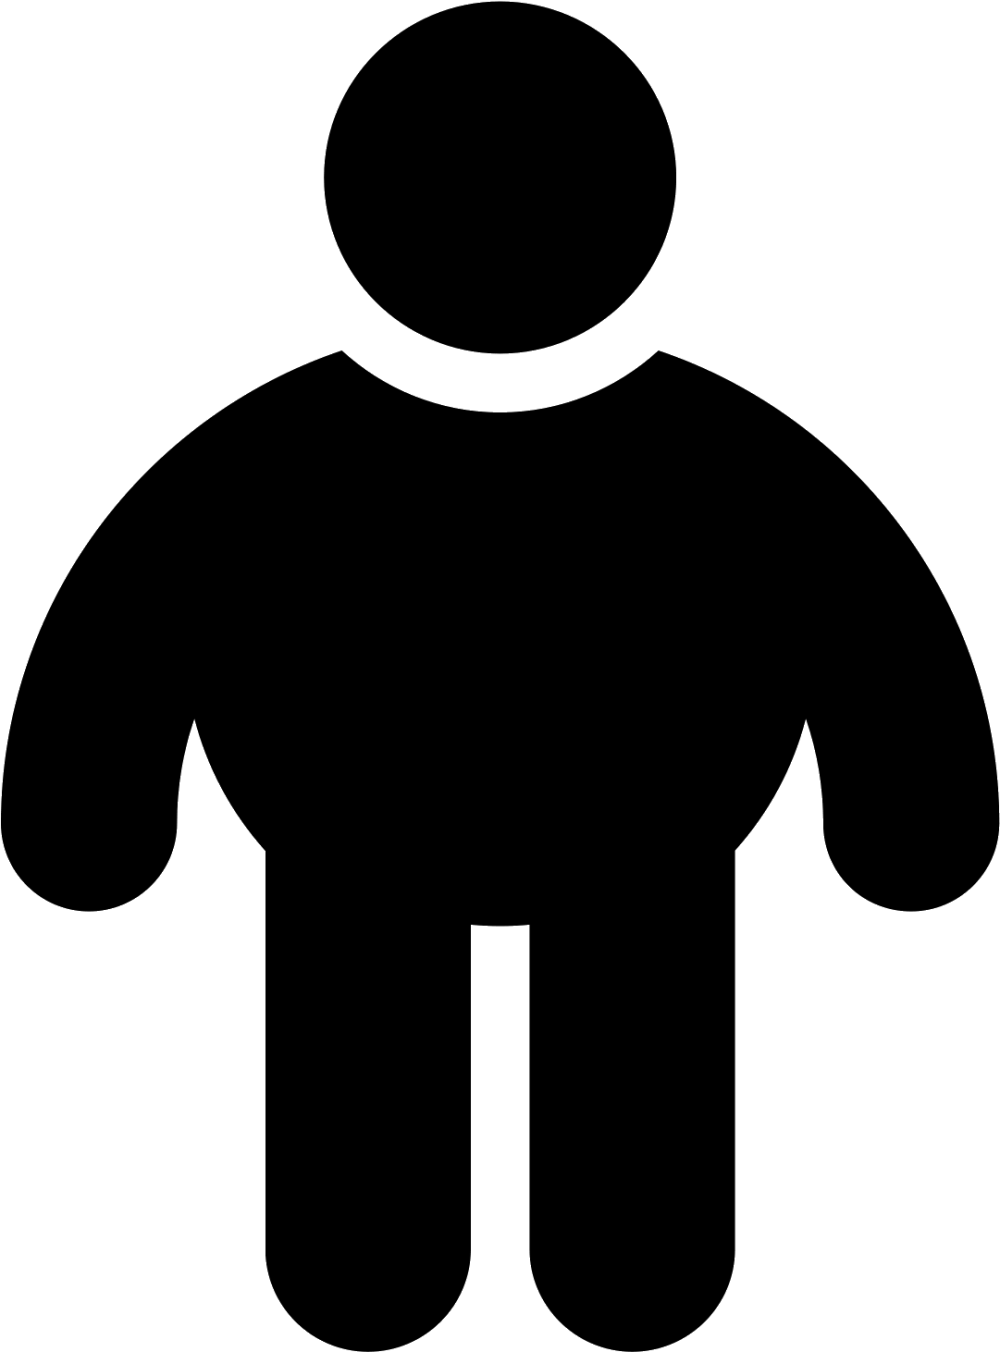 medium resolution of fat man filled icon person standing icon png clipart 1600x1600 png download